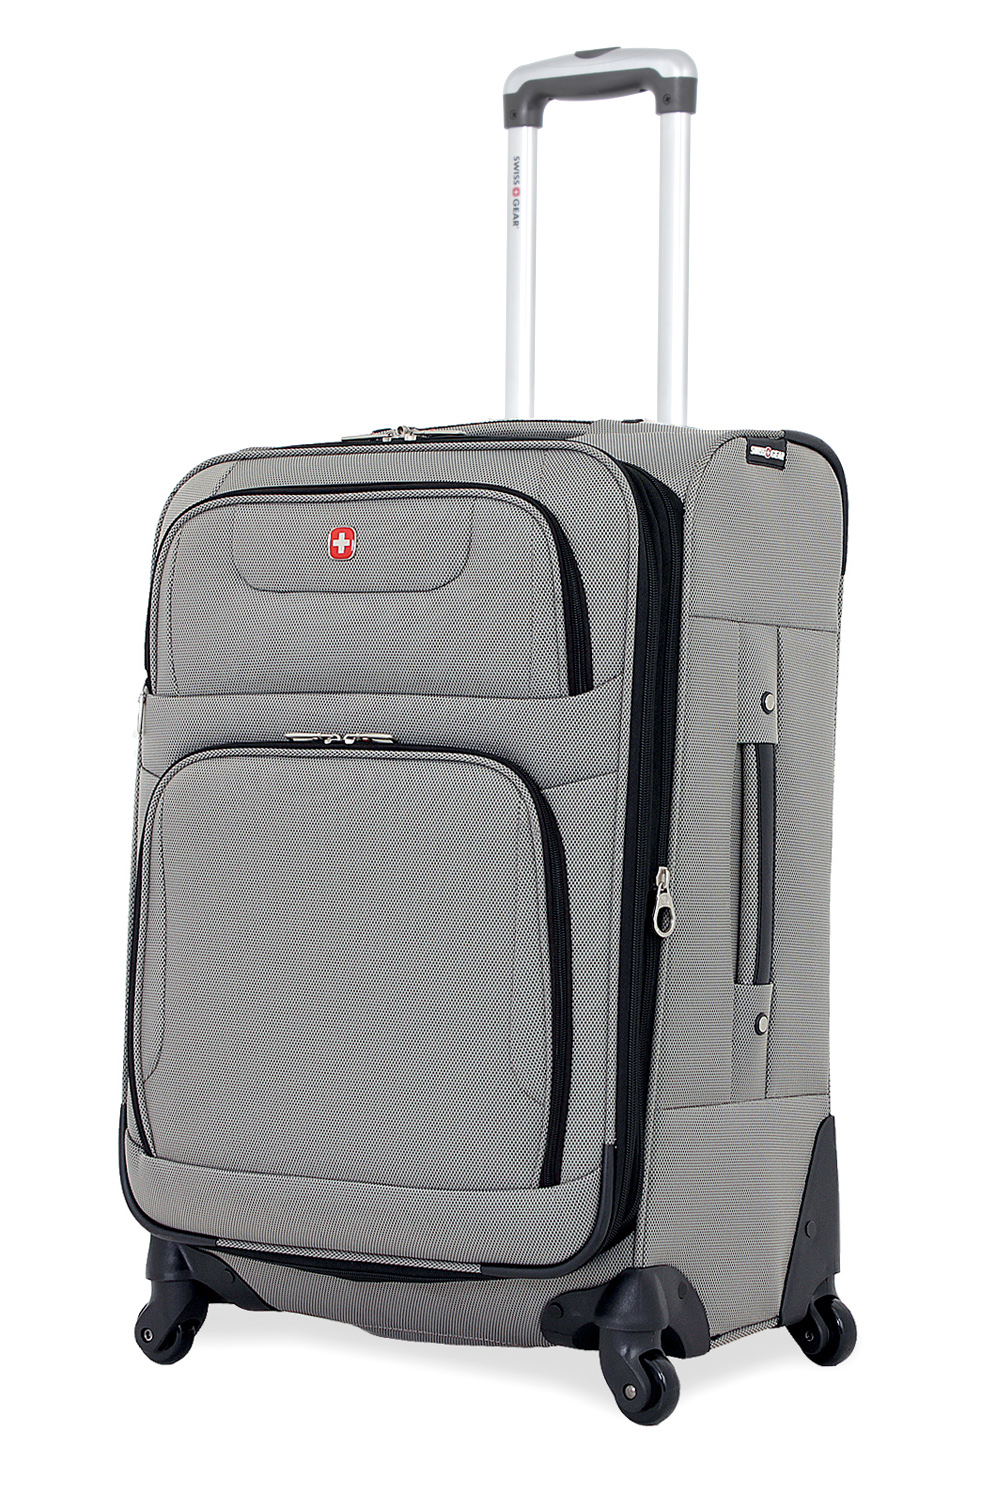 SWISSGEAR 7297 20 EXPANDABLE CARRY ON SPINNER LUGGAGE